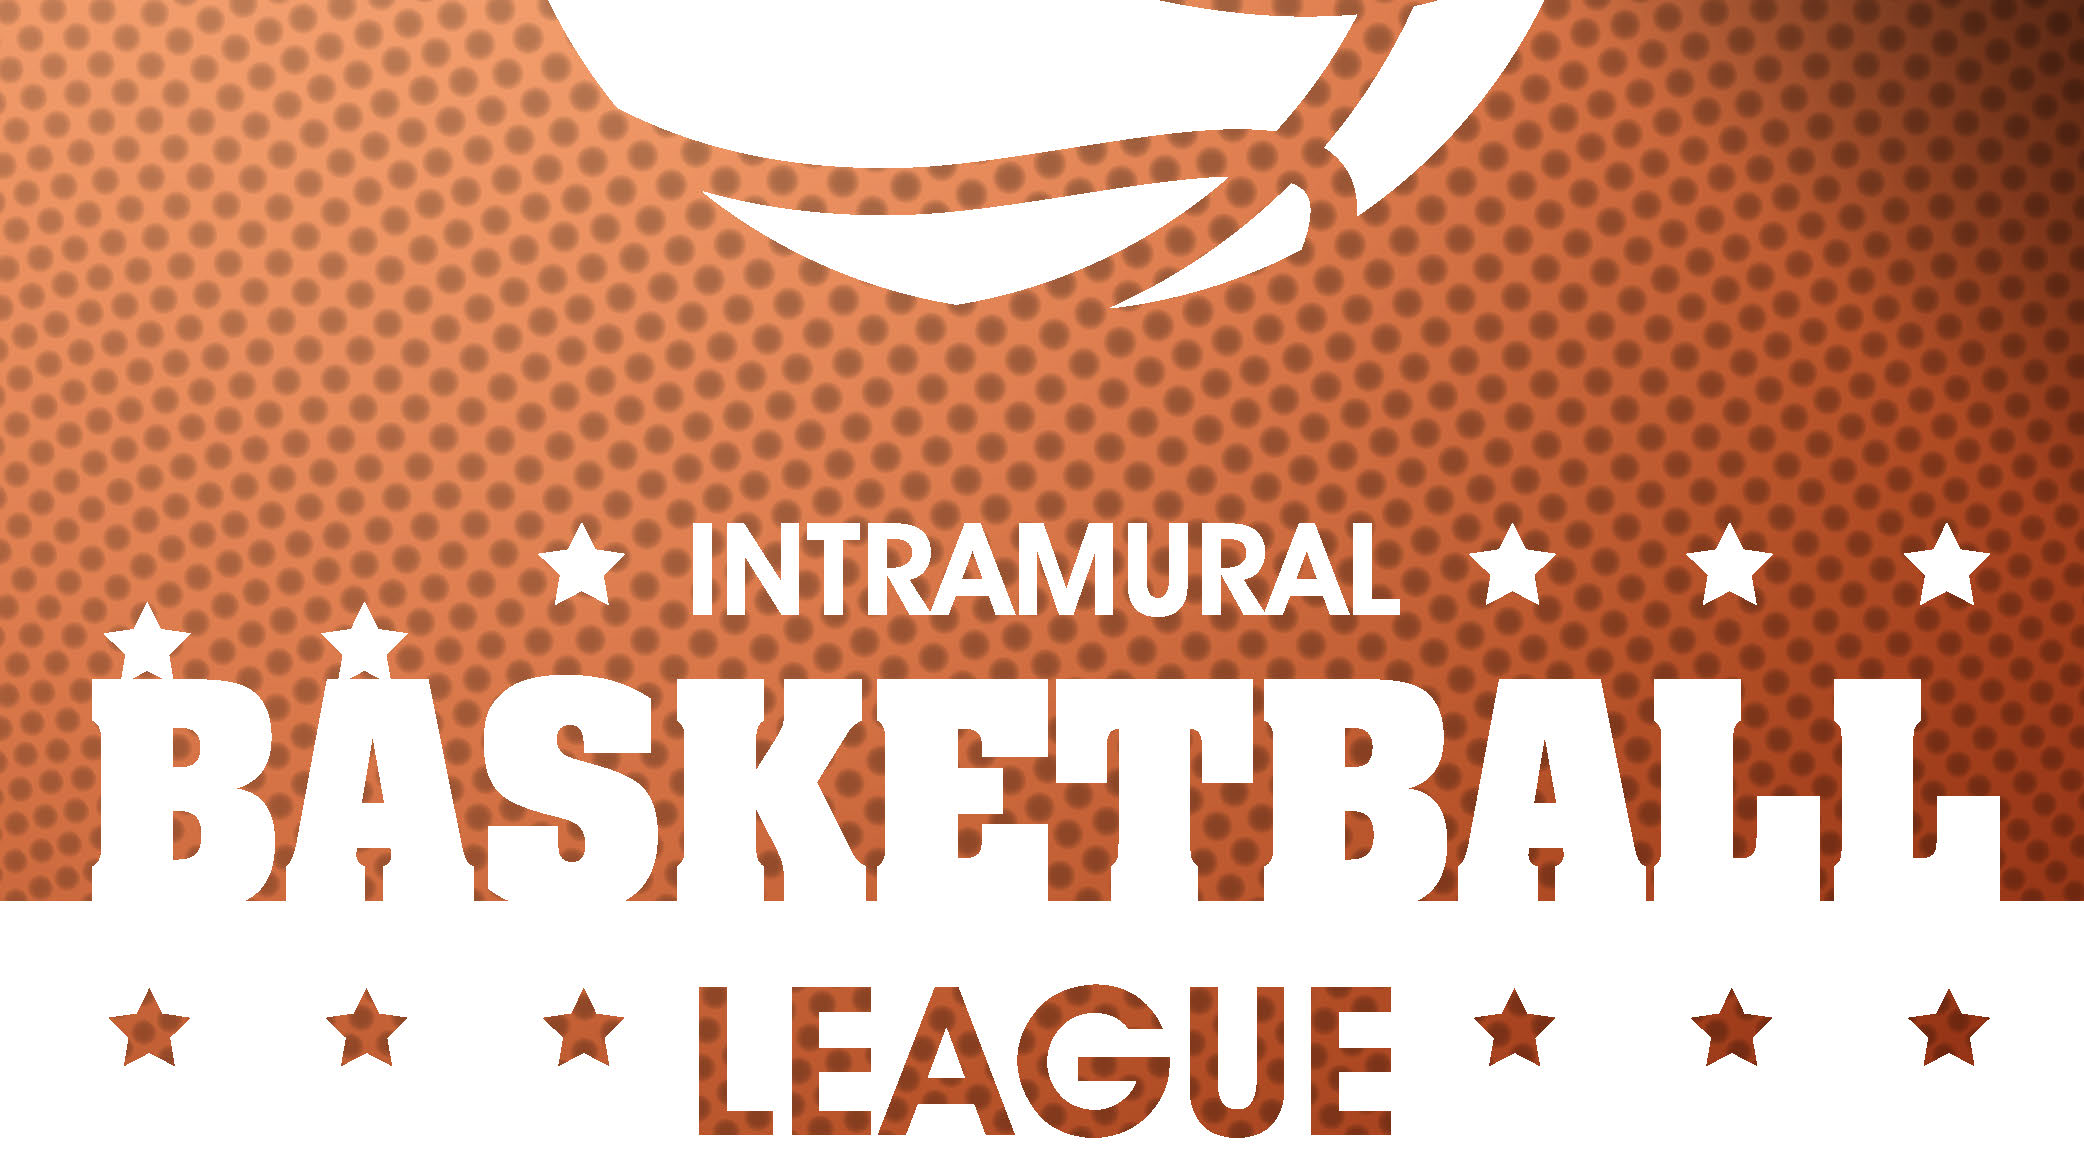 2019 Intramural Basketball League